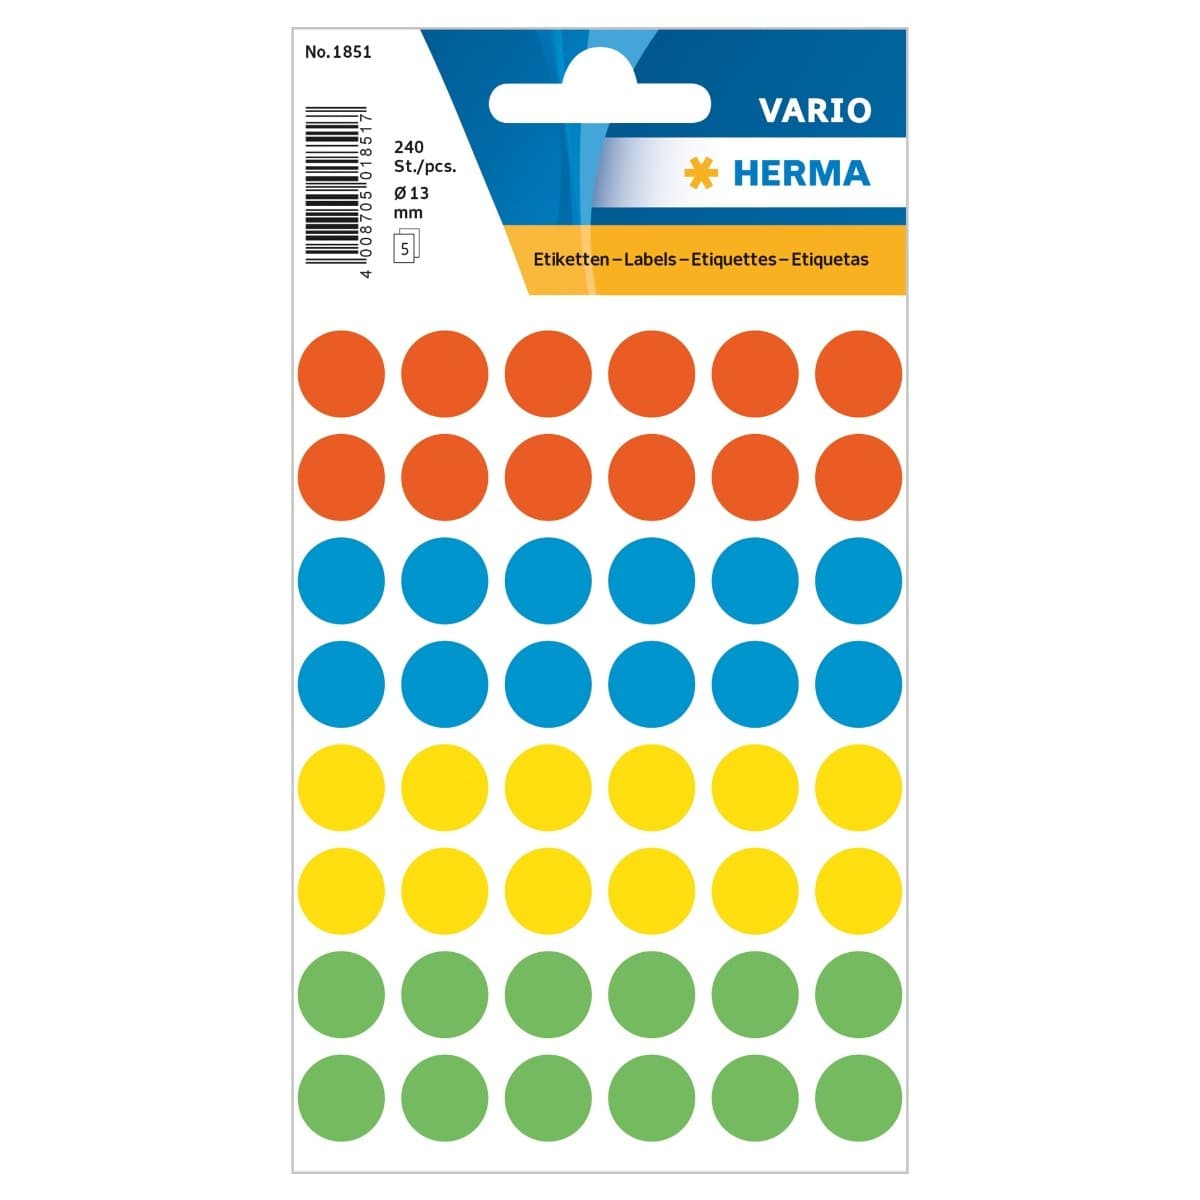 Herma Vario Sticker Color Dots, 13 mm, 240/pack, Assorted Colors